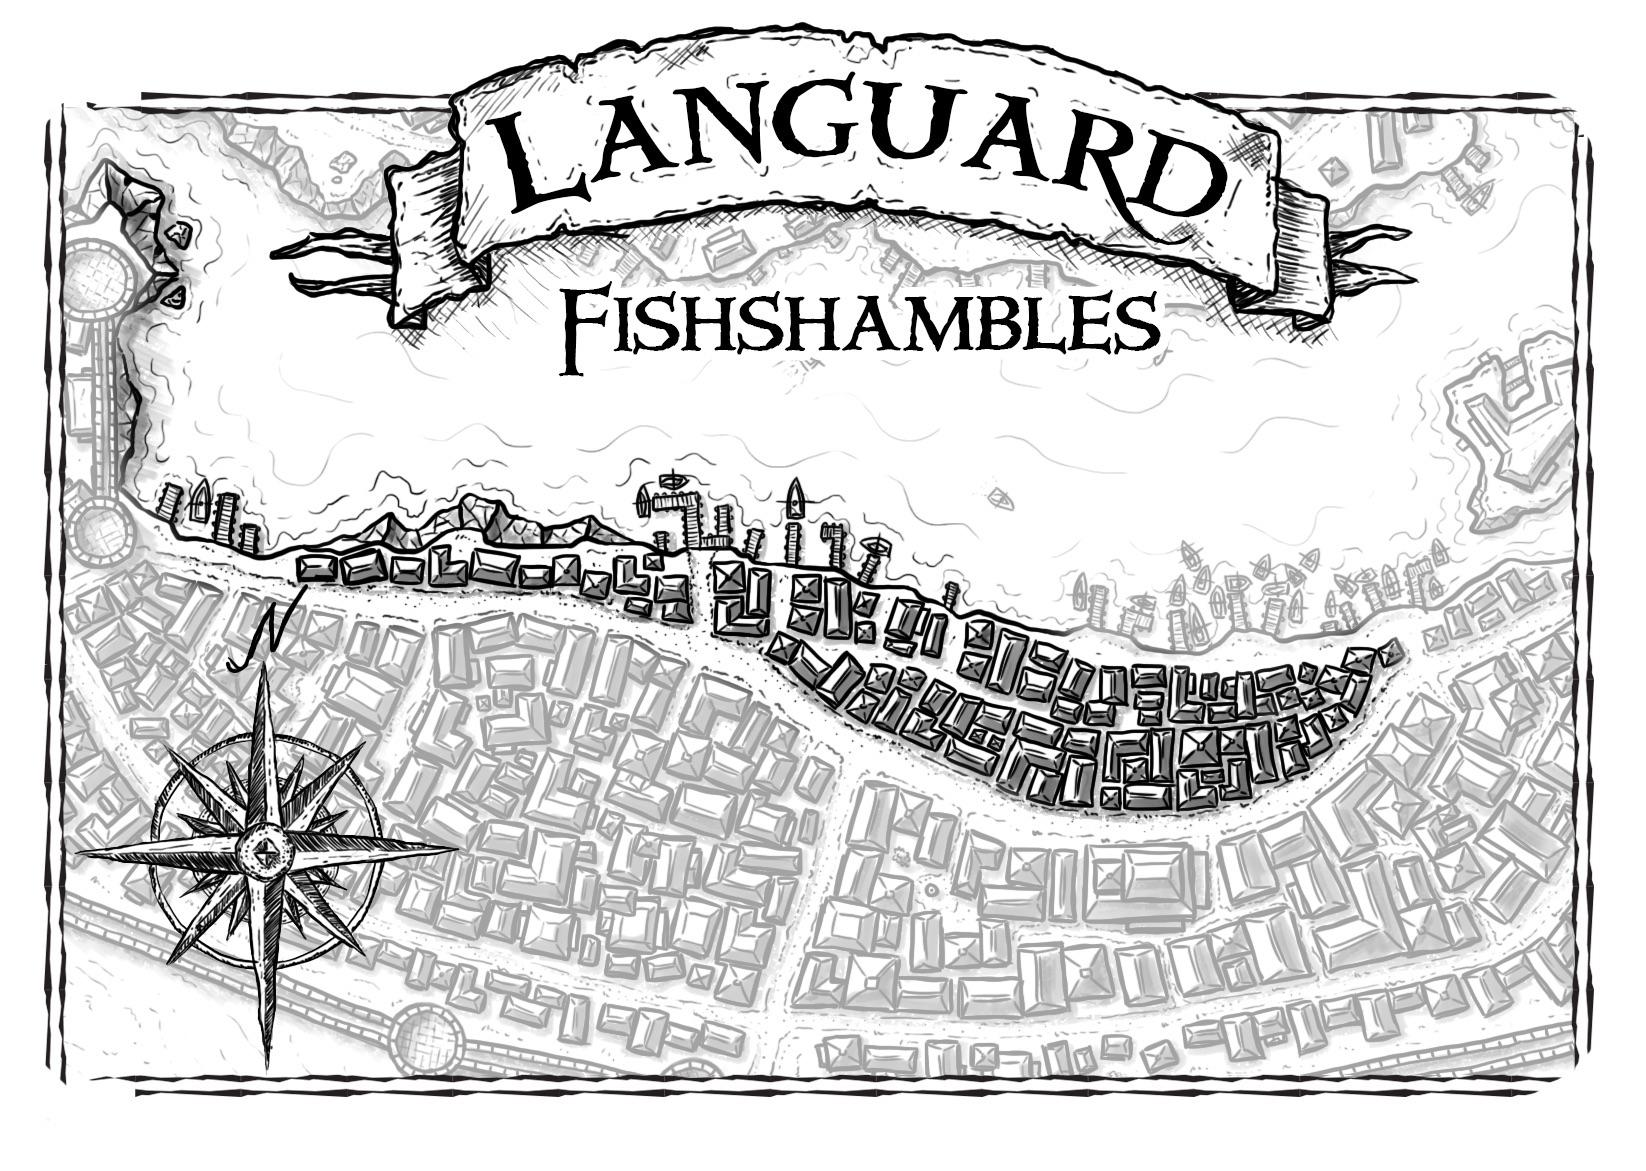 Languard_Fishshambles.jpg